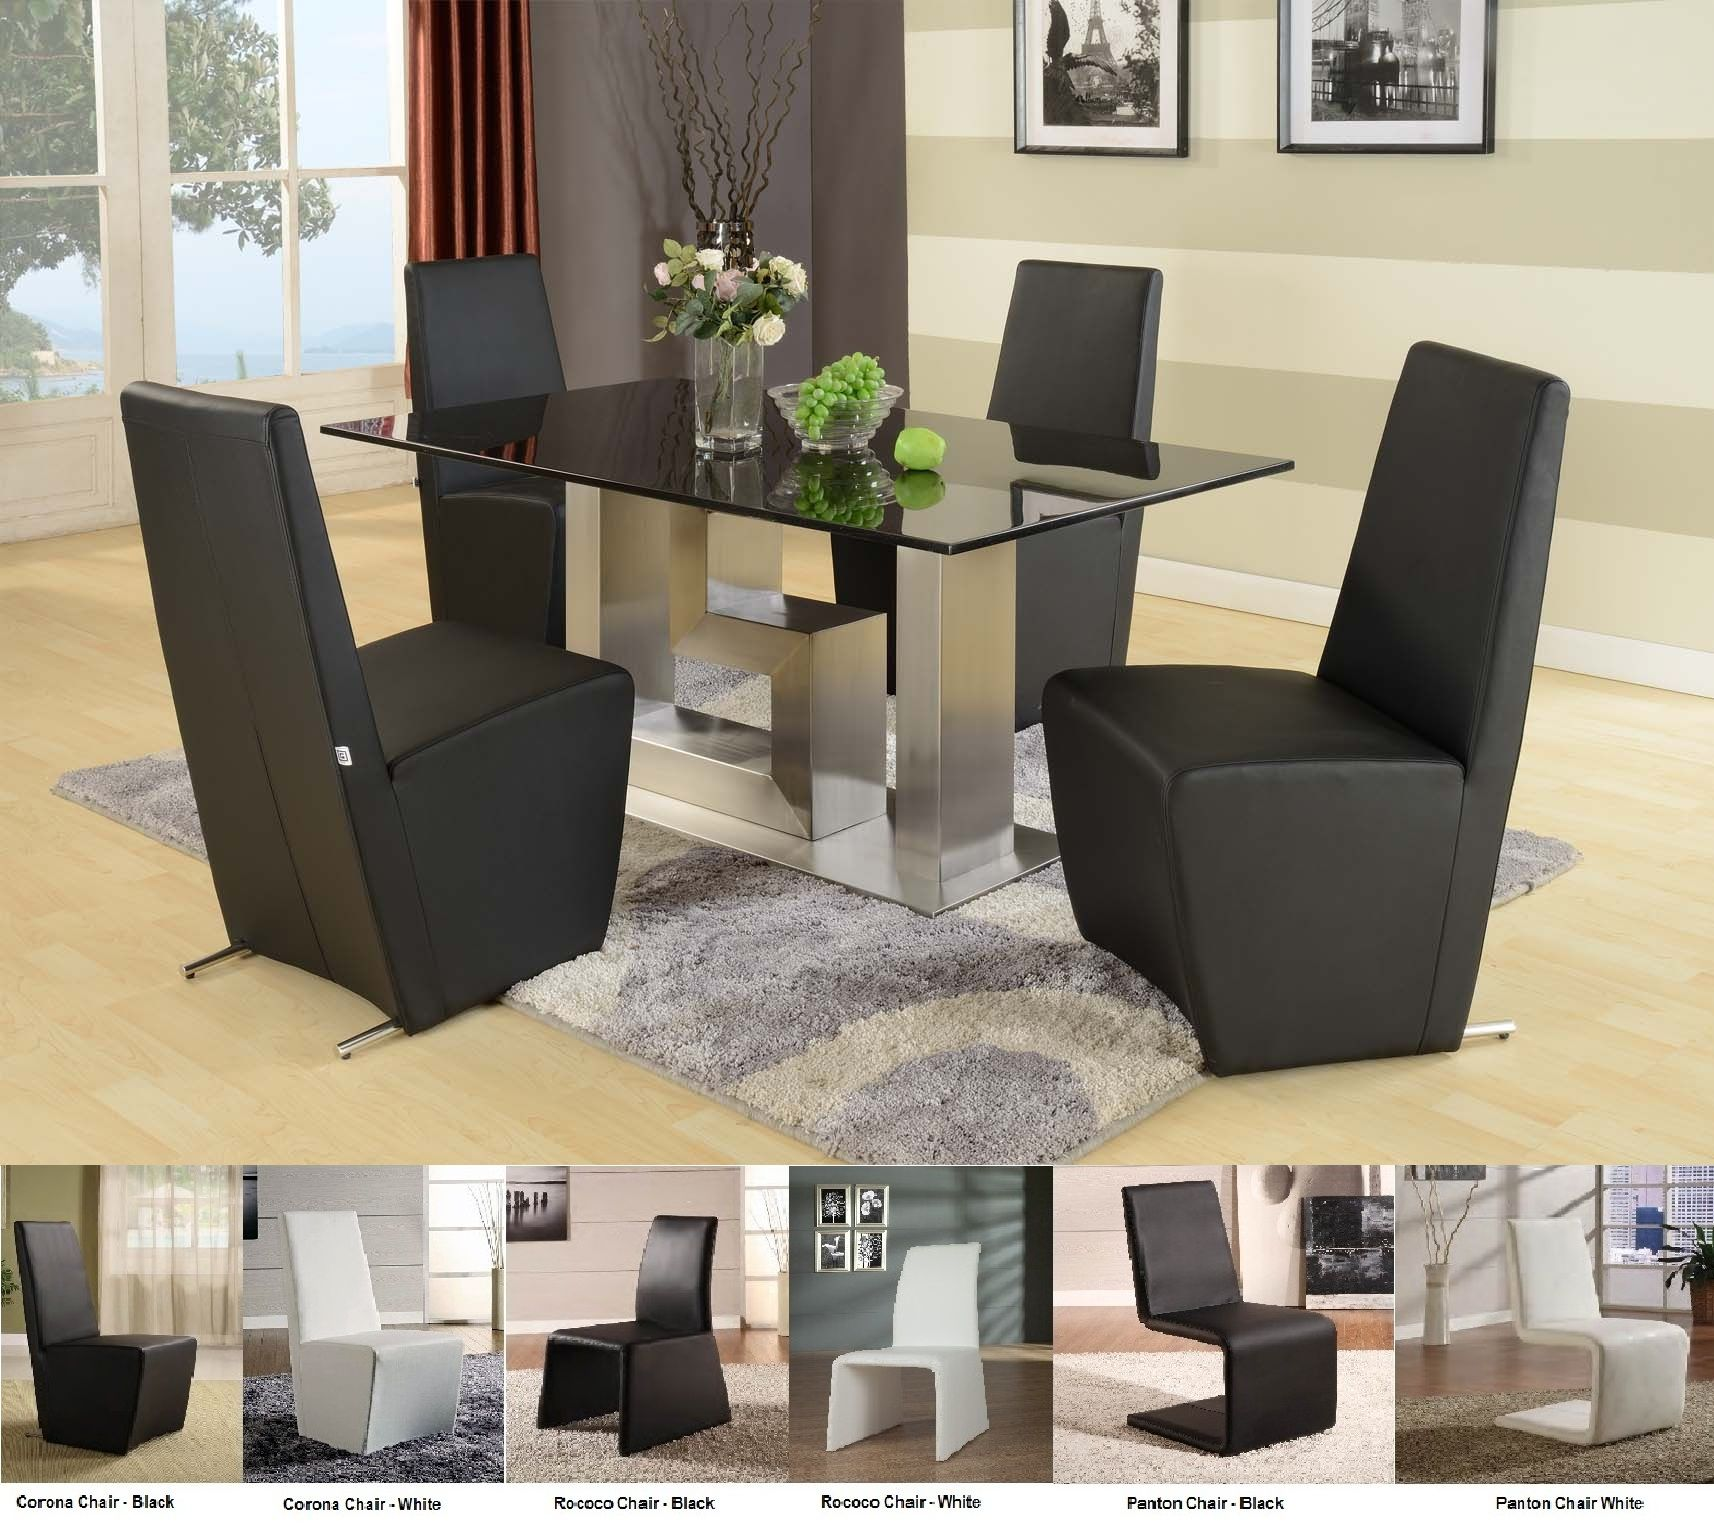 Brilliant Black White Dining Table with Chairs 1714 x 1530 · 304 kB · jpeg